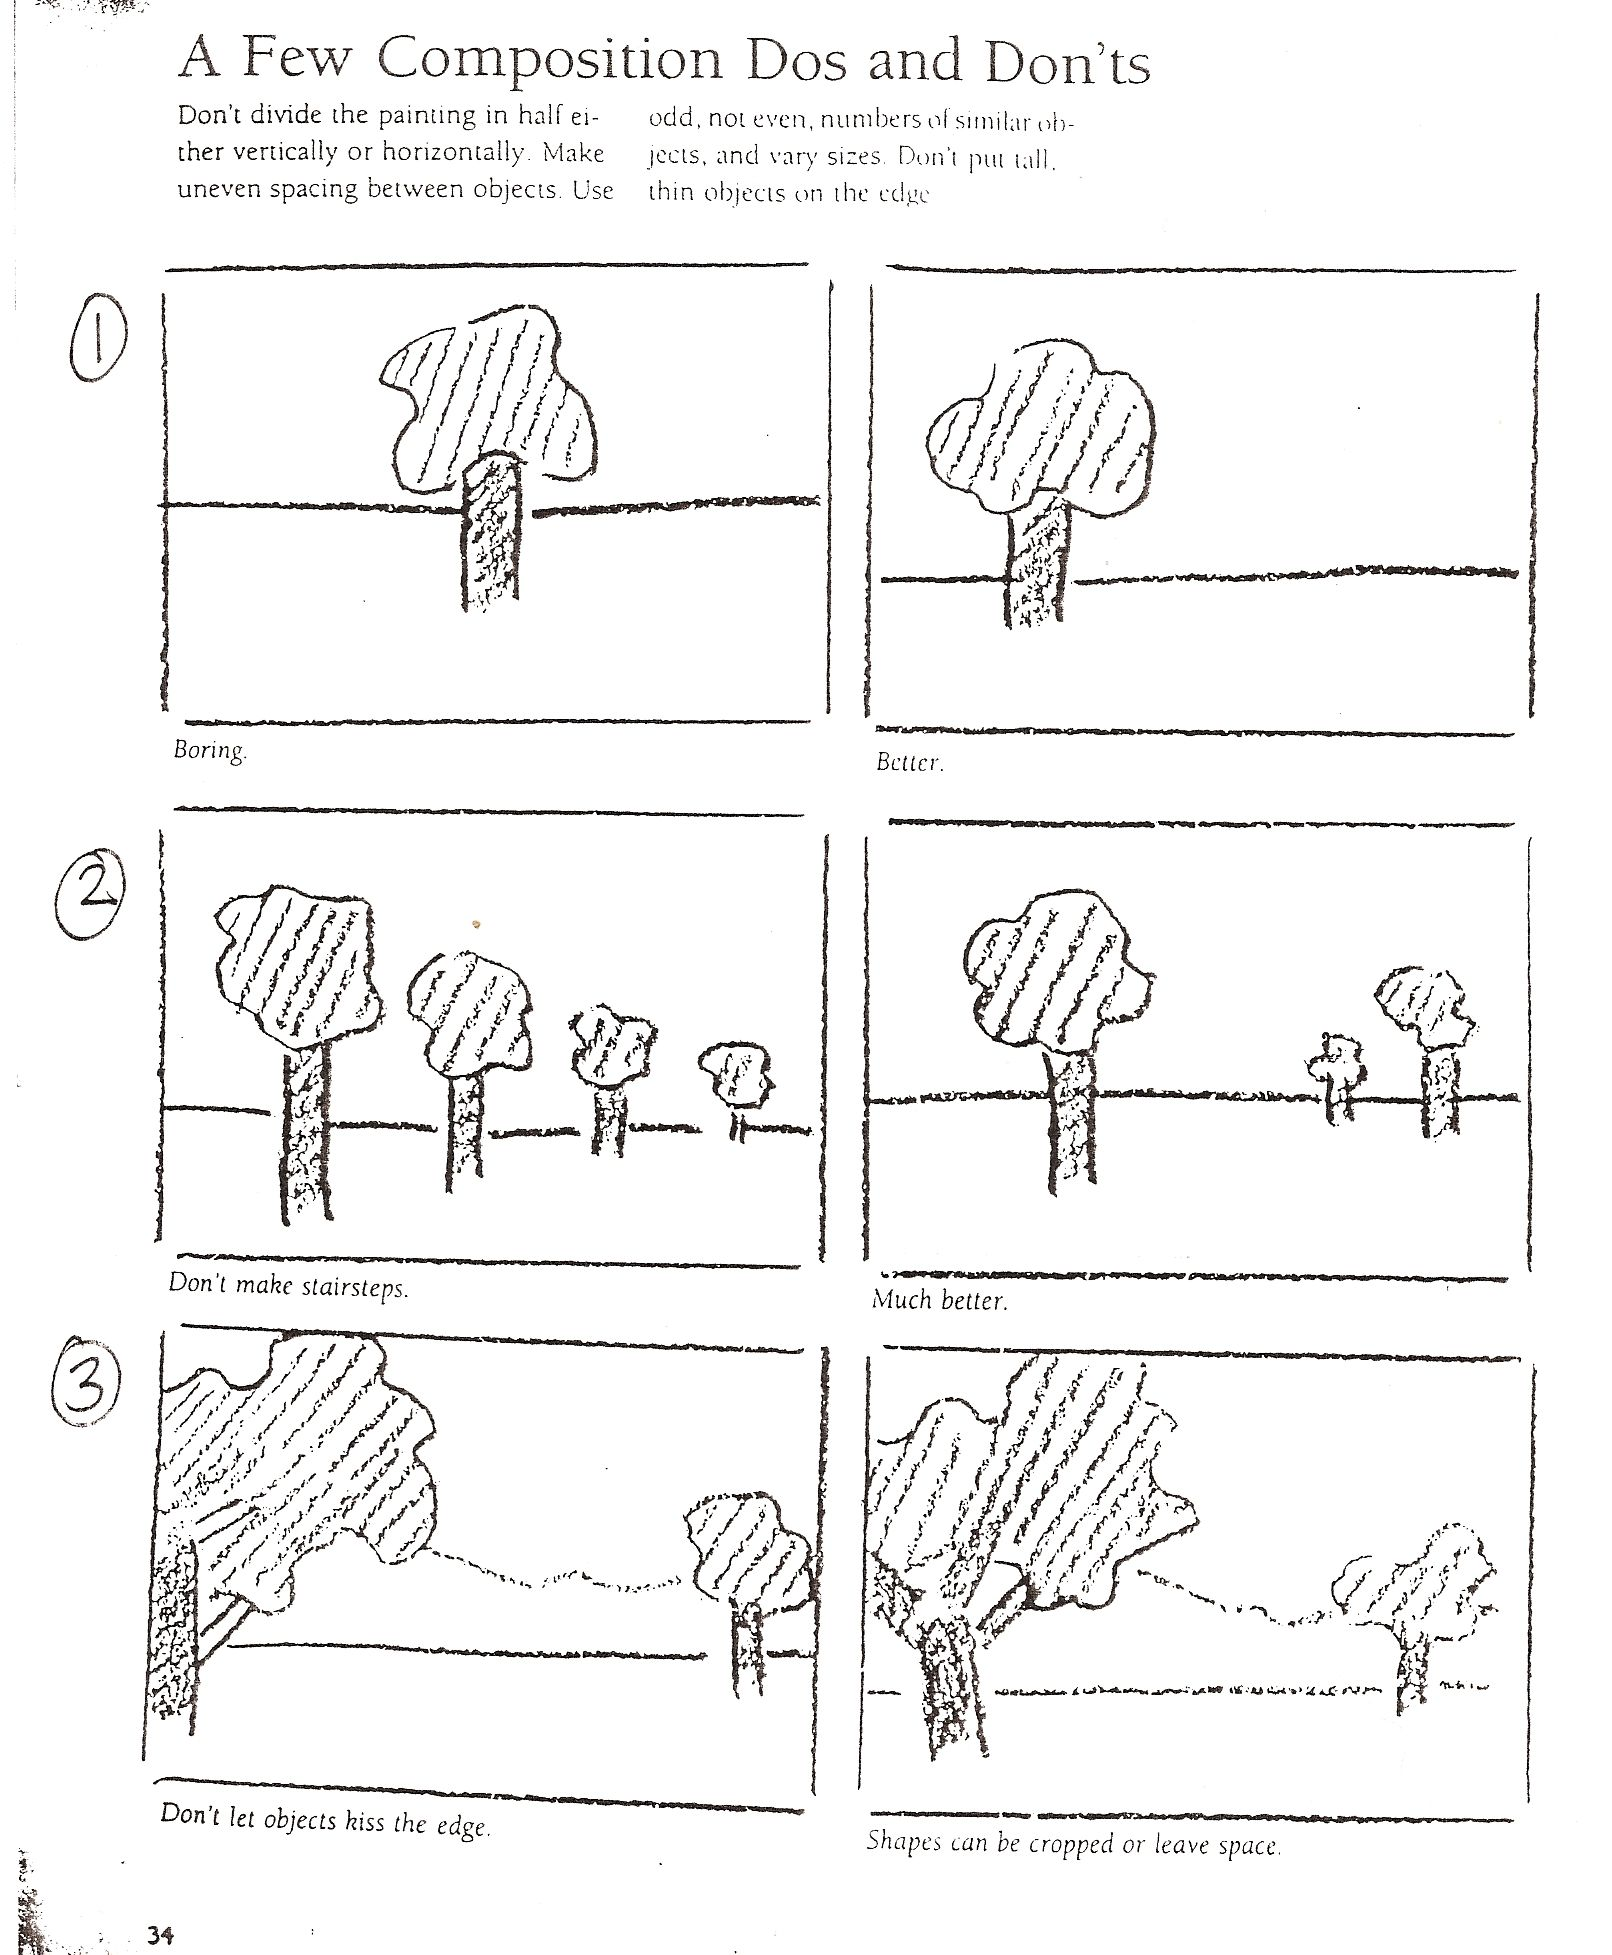 Composition Do S And Dont S Great Source For Simplified Examples I Could Use For Posters For The